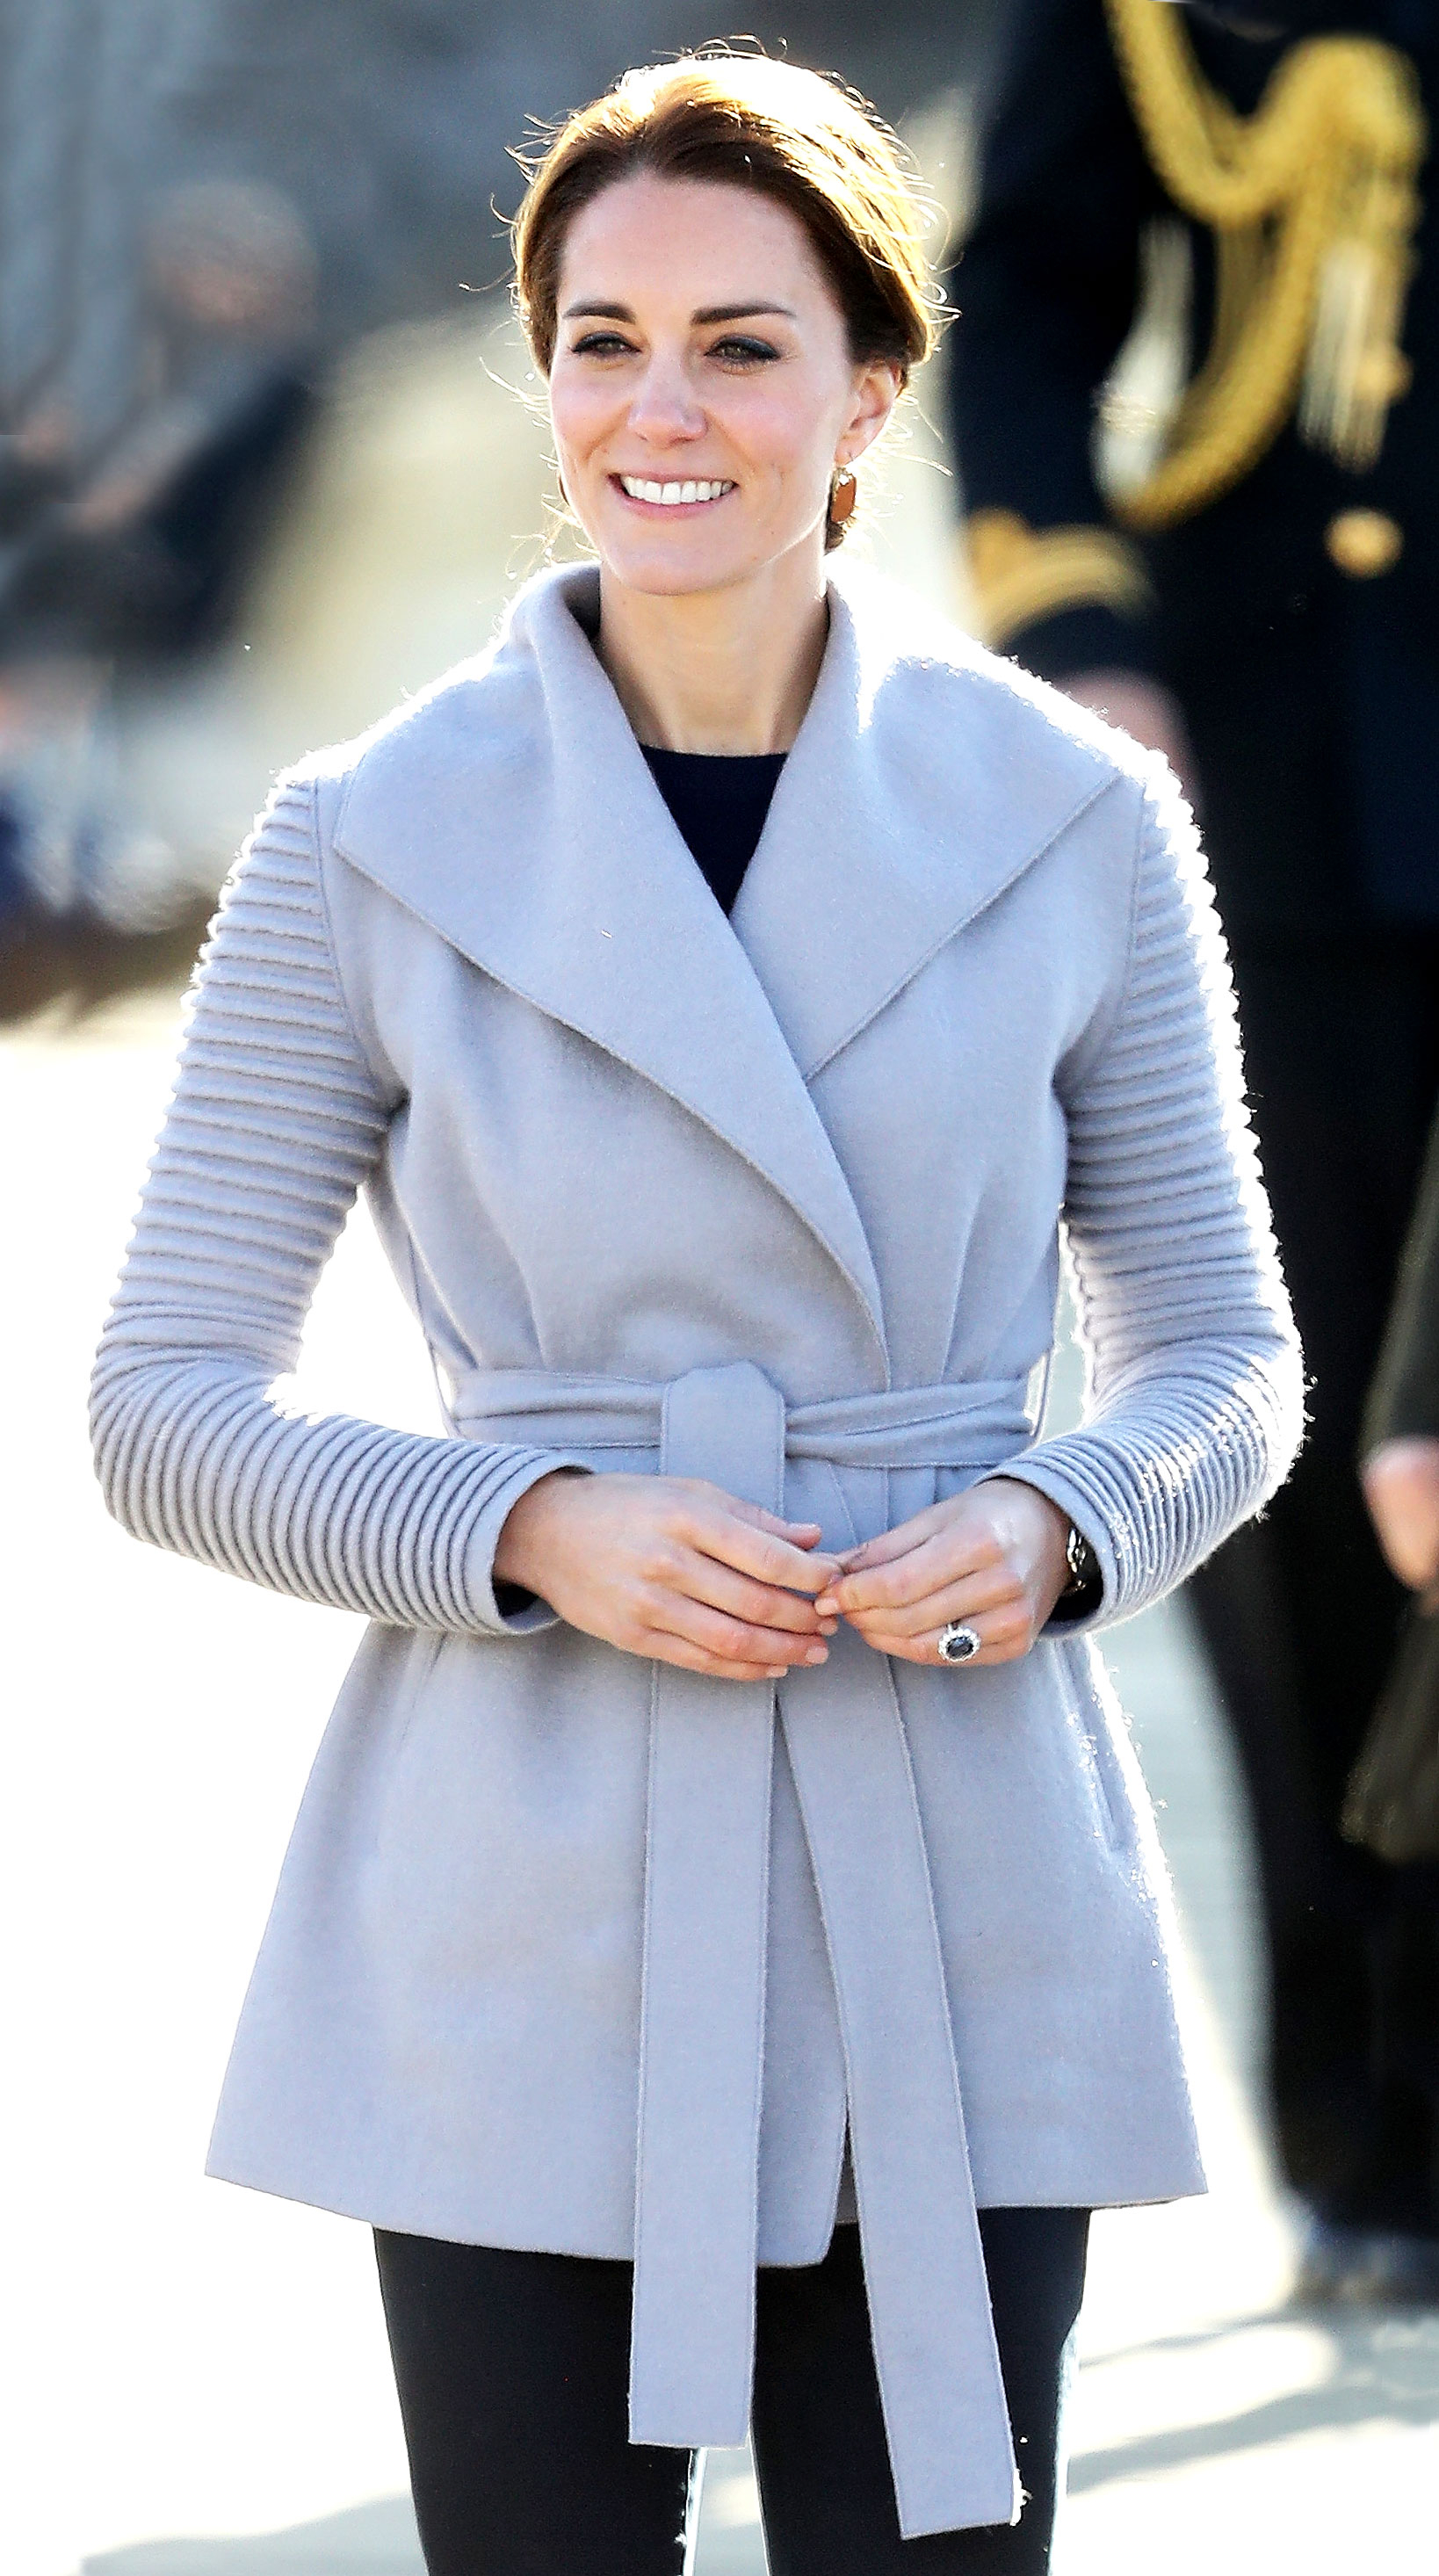 e1baf8d82e0 Duchess Kate wore a gray coat with ribbed sleeves during her royal tour of  Canada